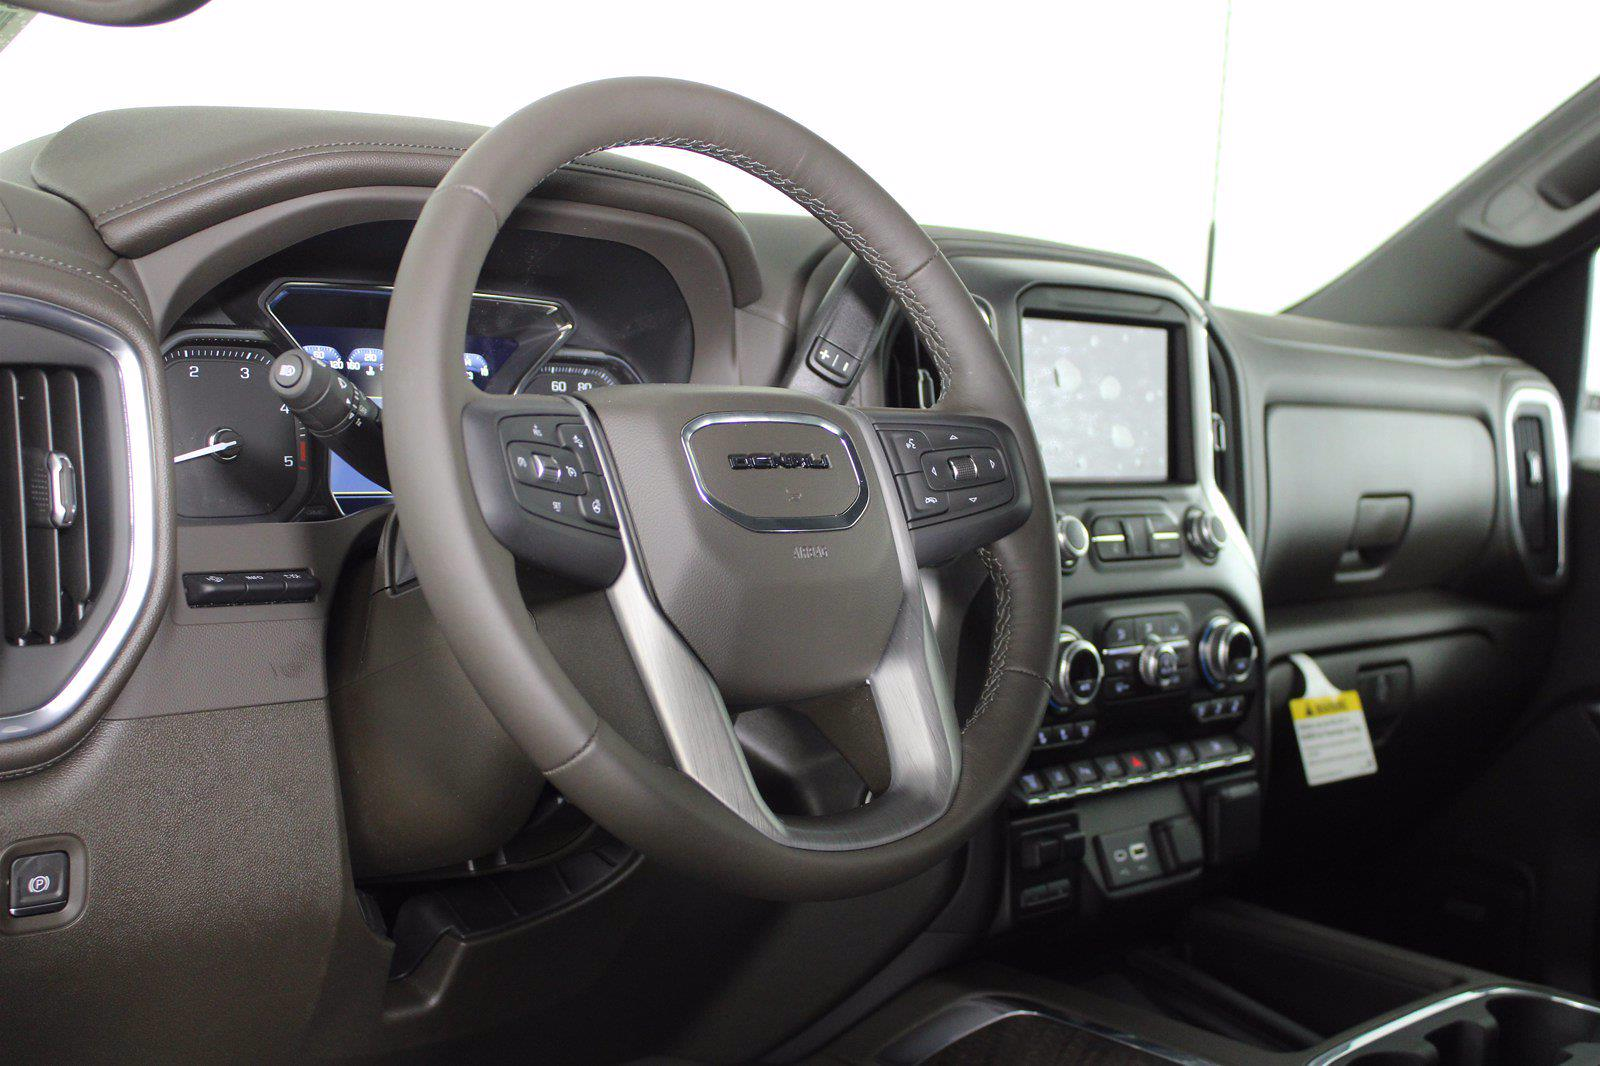 2021 GMC Sierra 3500 Crew Cab 4x4, Pickup #D410490 - photo 9